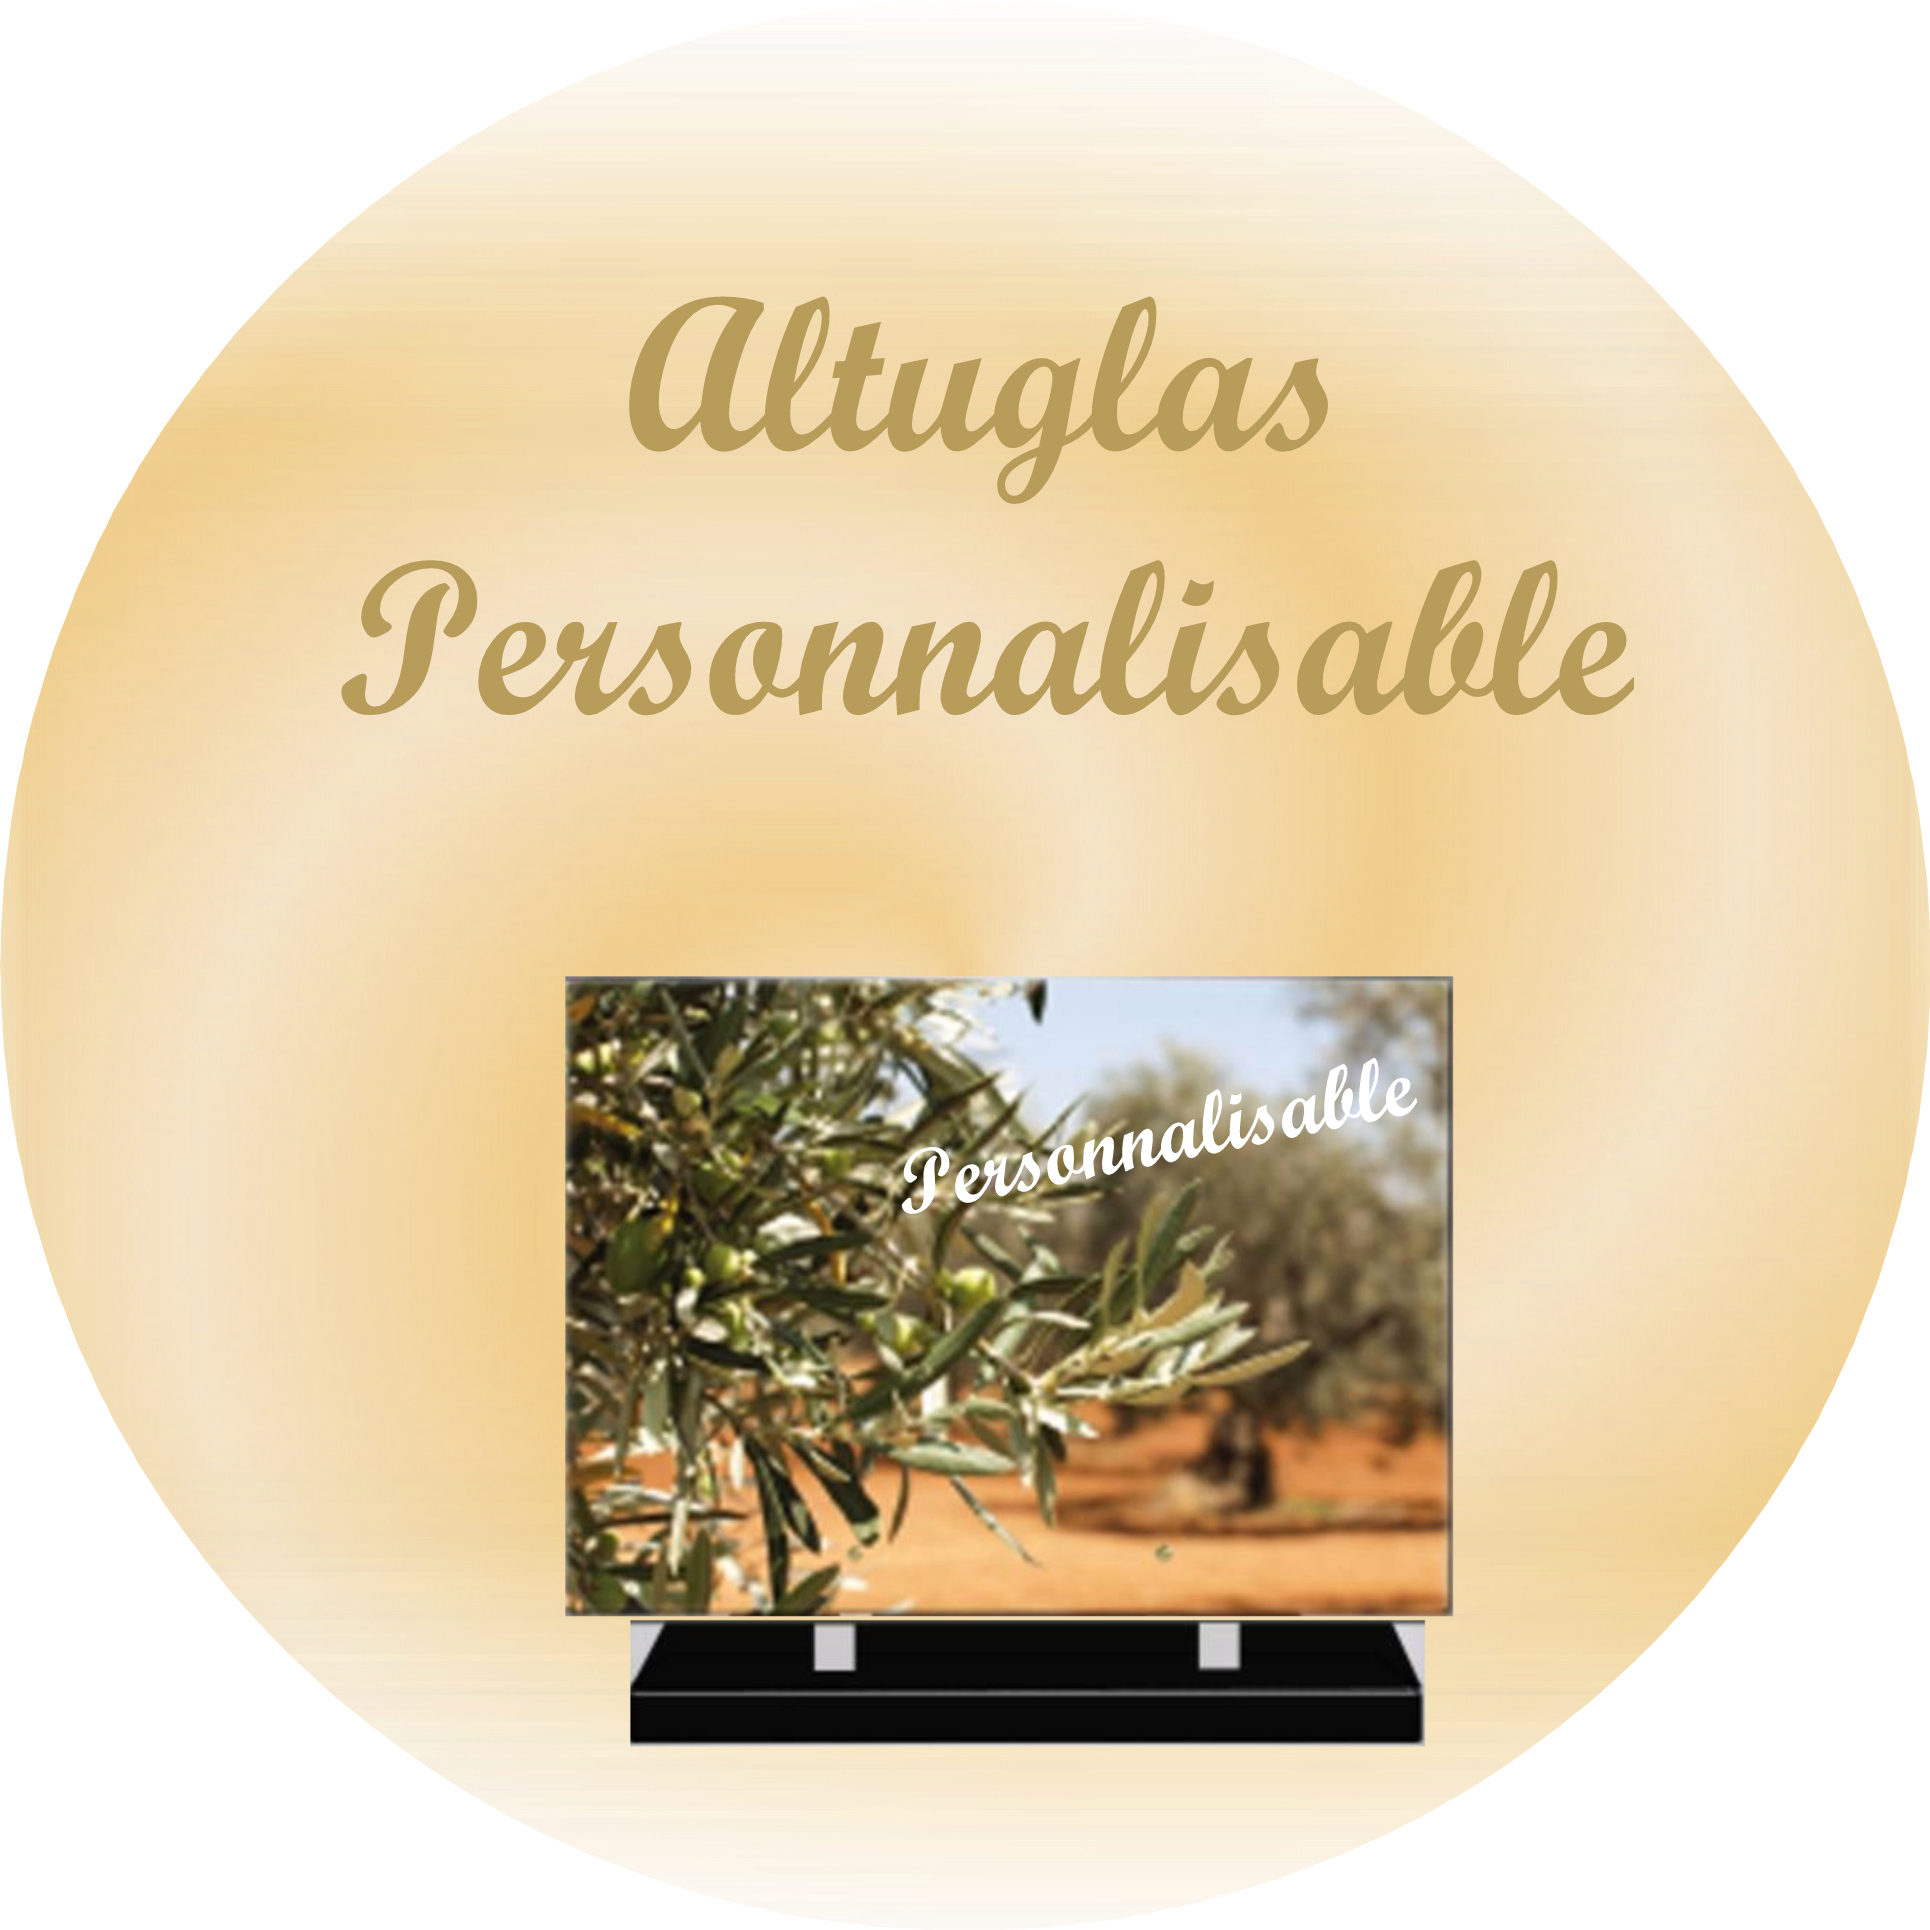 PLAQUES FUNERAIRES MODERNES PERSONNALISABLES RECTANGLE ACQ